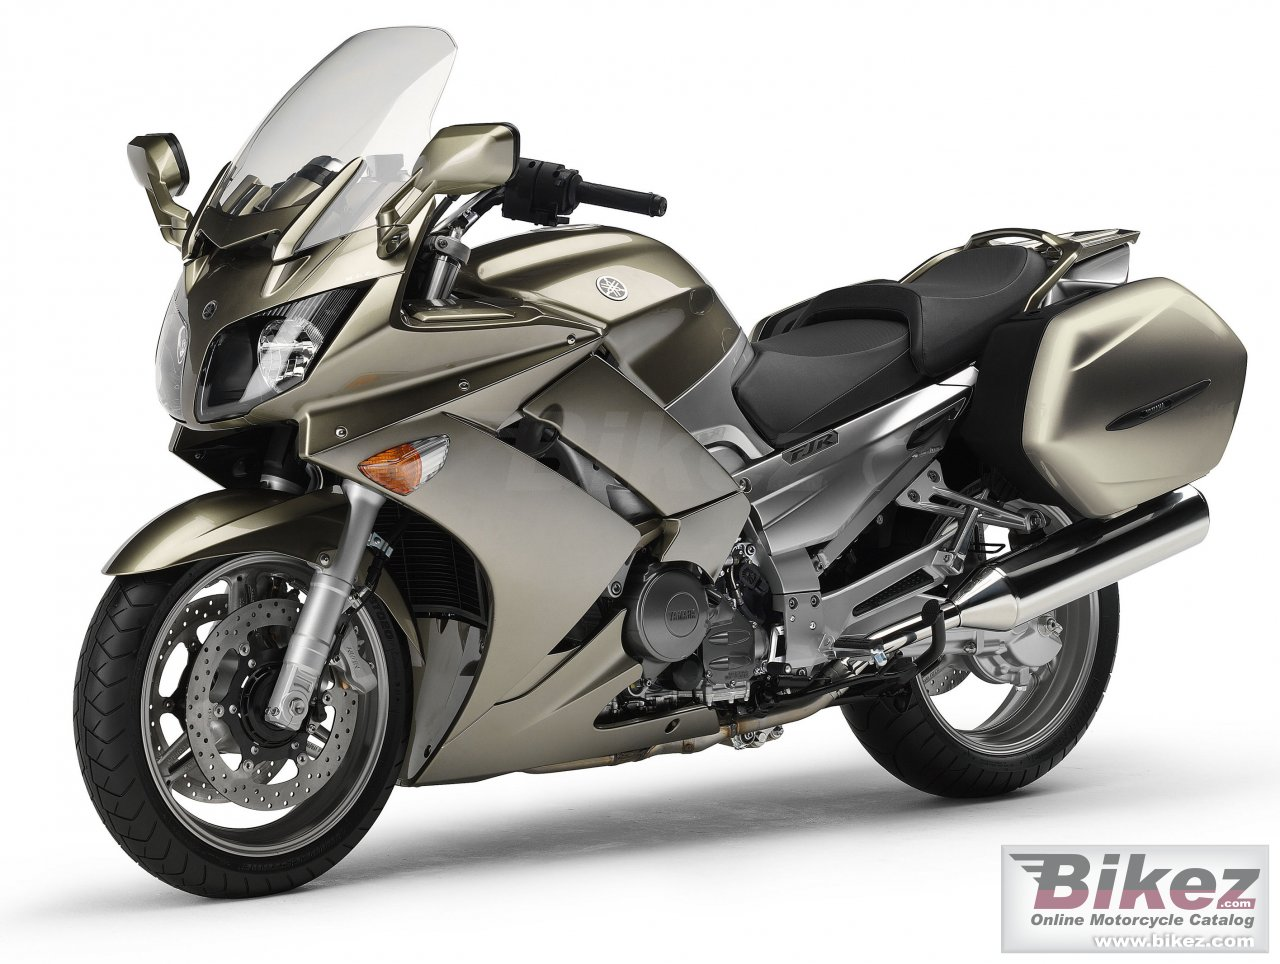 Big Yamaha fjr 1300 as picture and wallpaper from Bikez.com